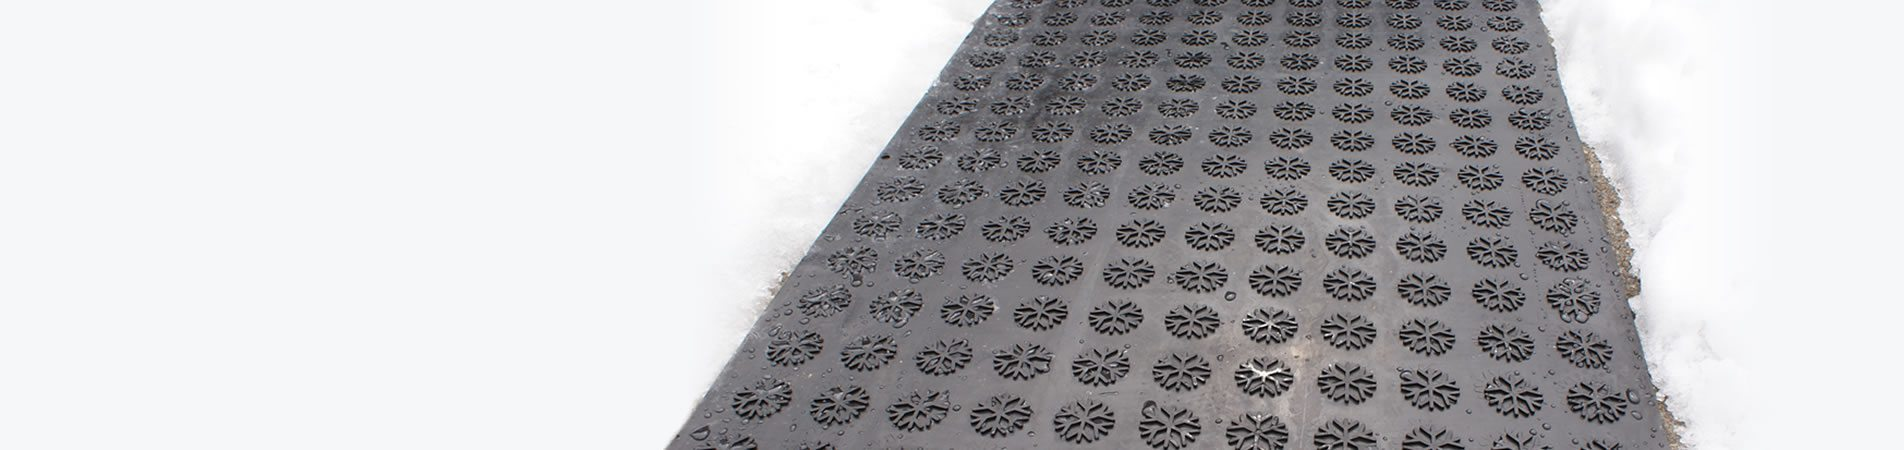 Hotflake mat on walkway surrounded by snow